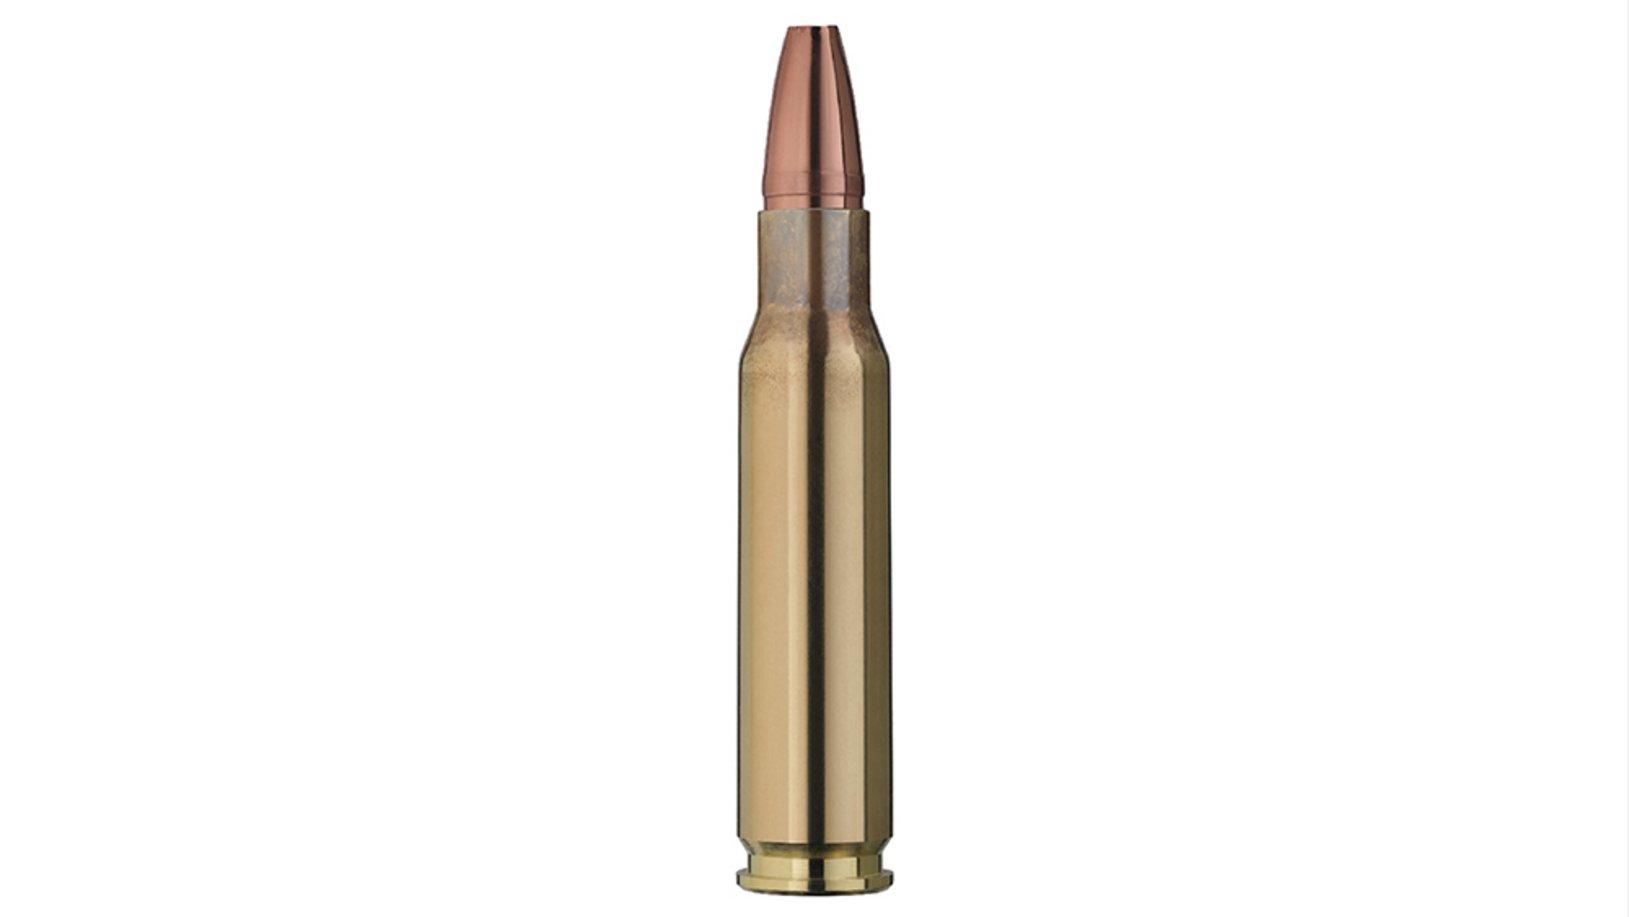 Single bullet view of GECO .308 Win. STAR 10,7g